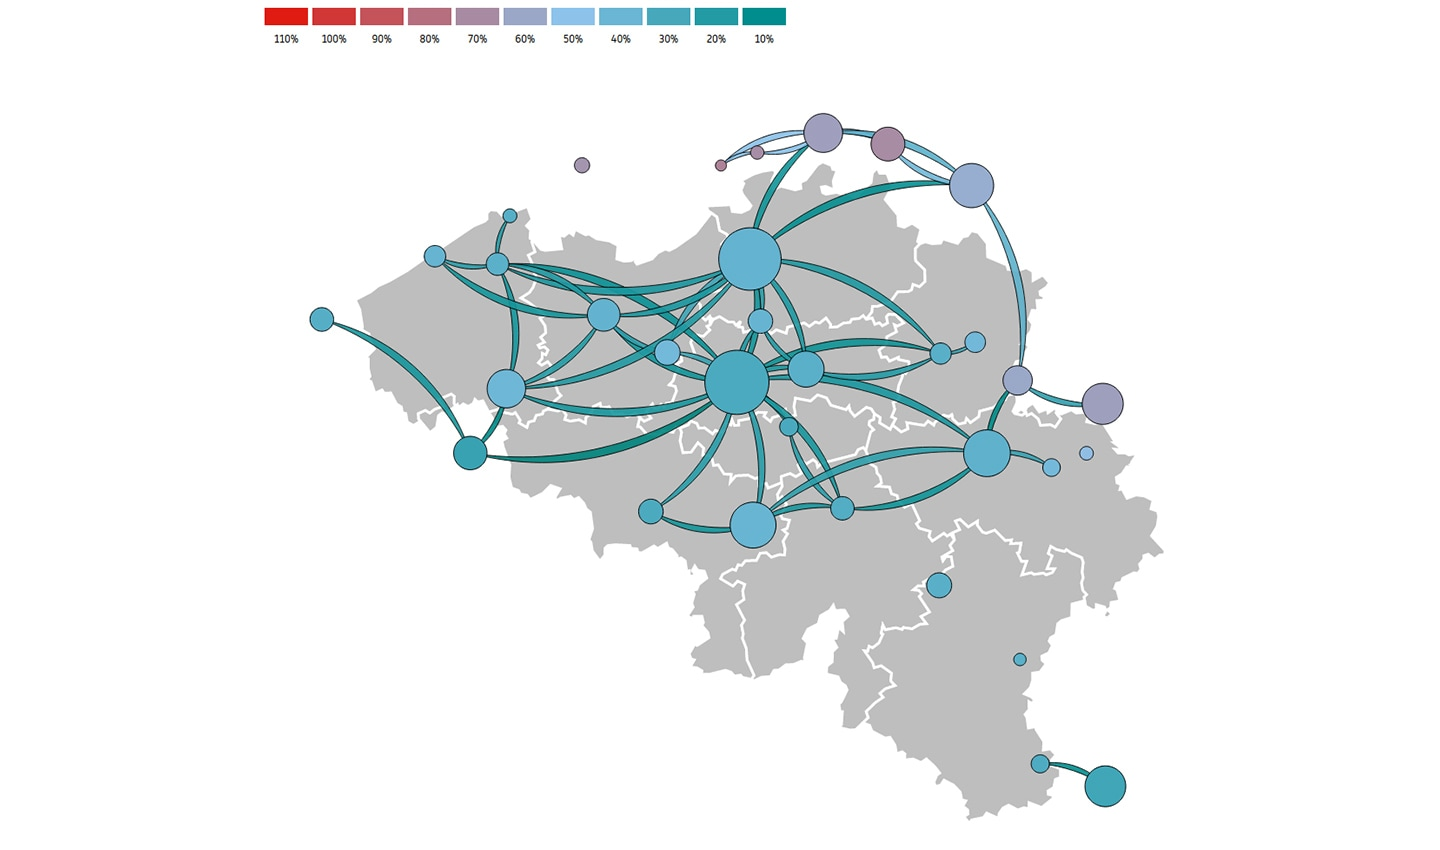 Remaining mobility in Belgium between April 4, 2020 and April 10, 2020 as a percentage of January traffic.